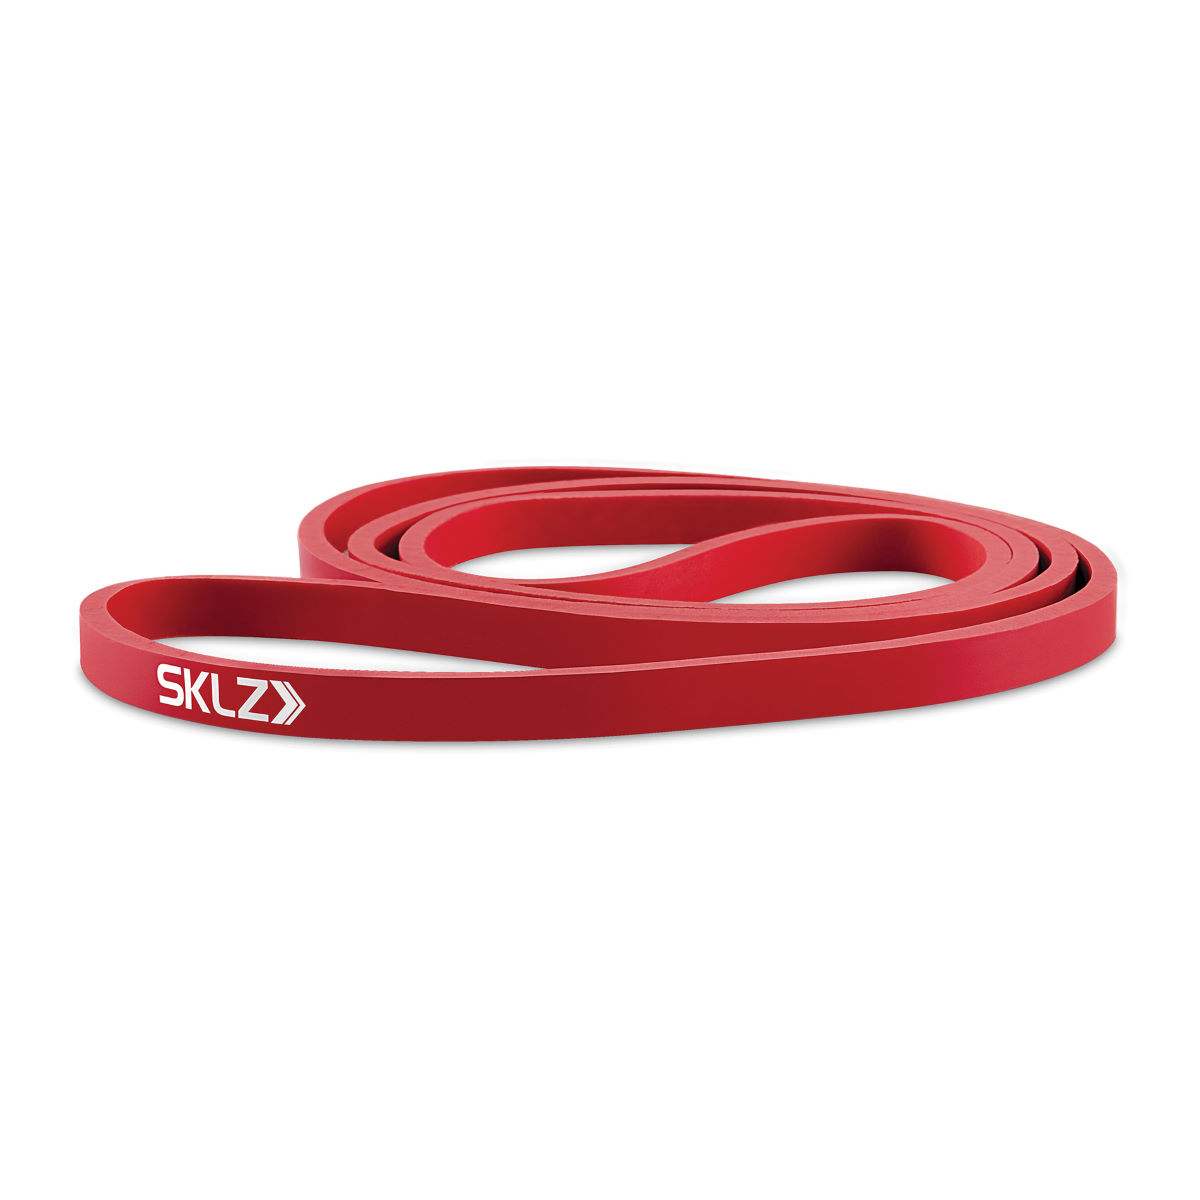 SKLZ Pro Bands Medium Red - Rodillos de masaje